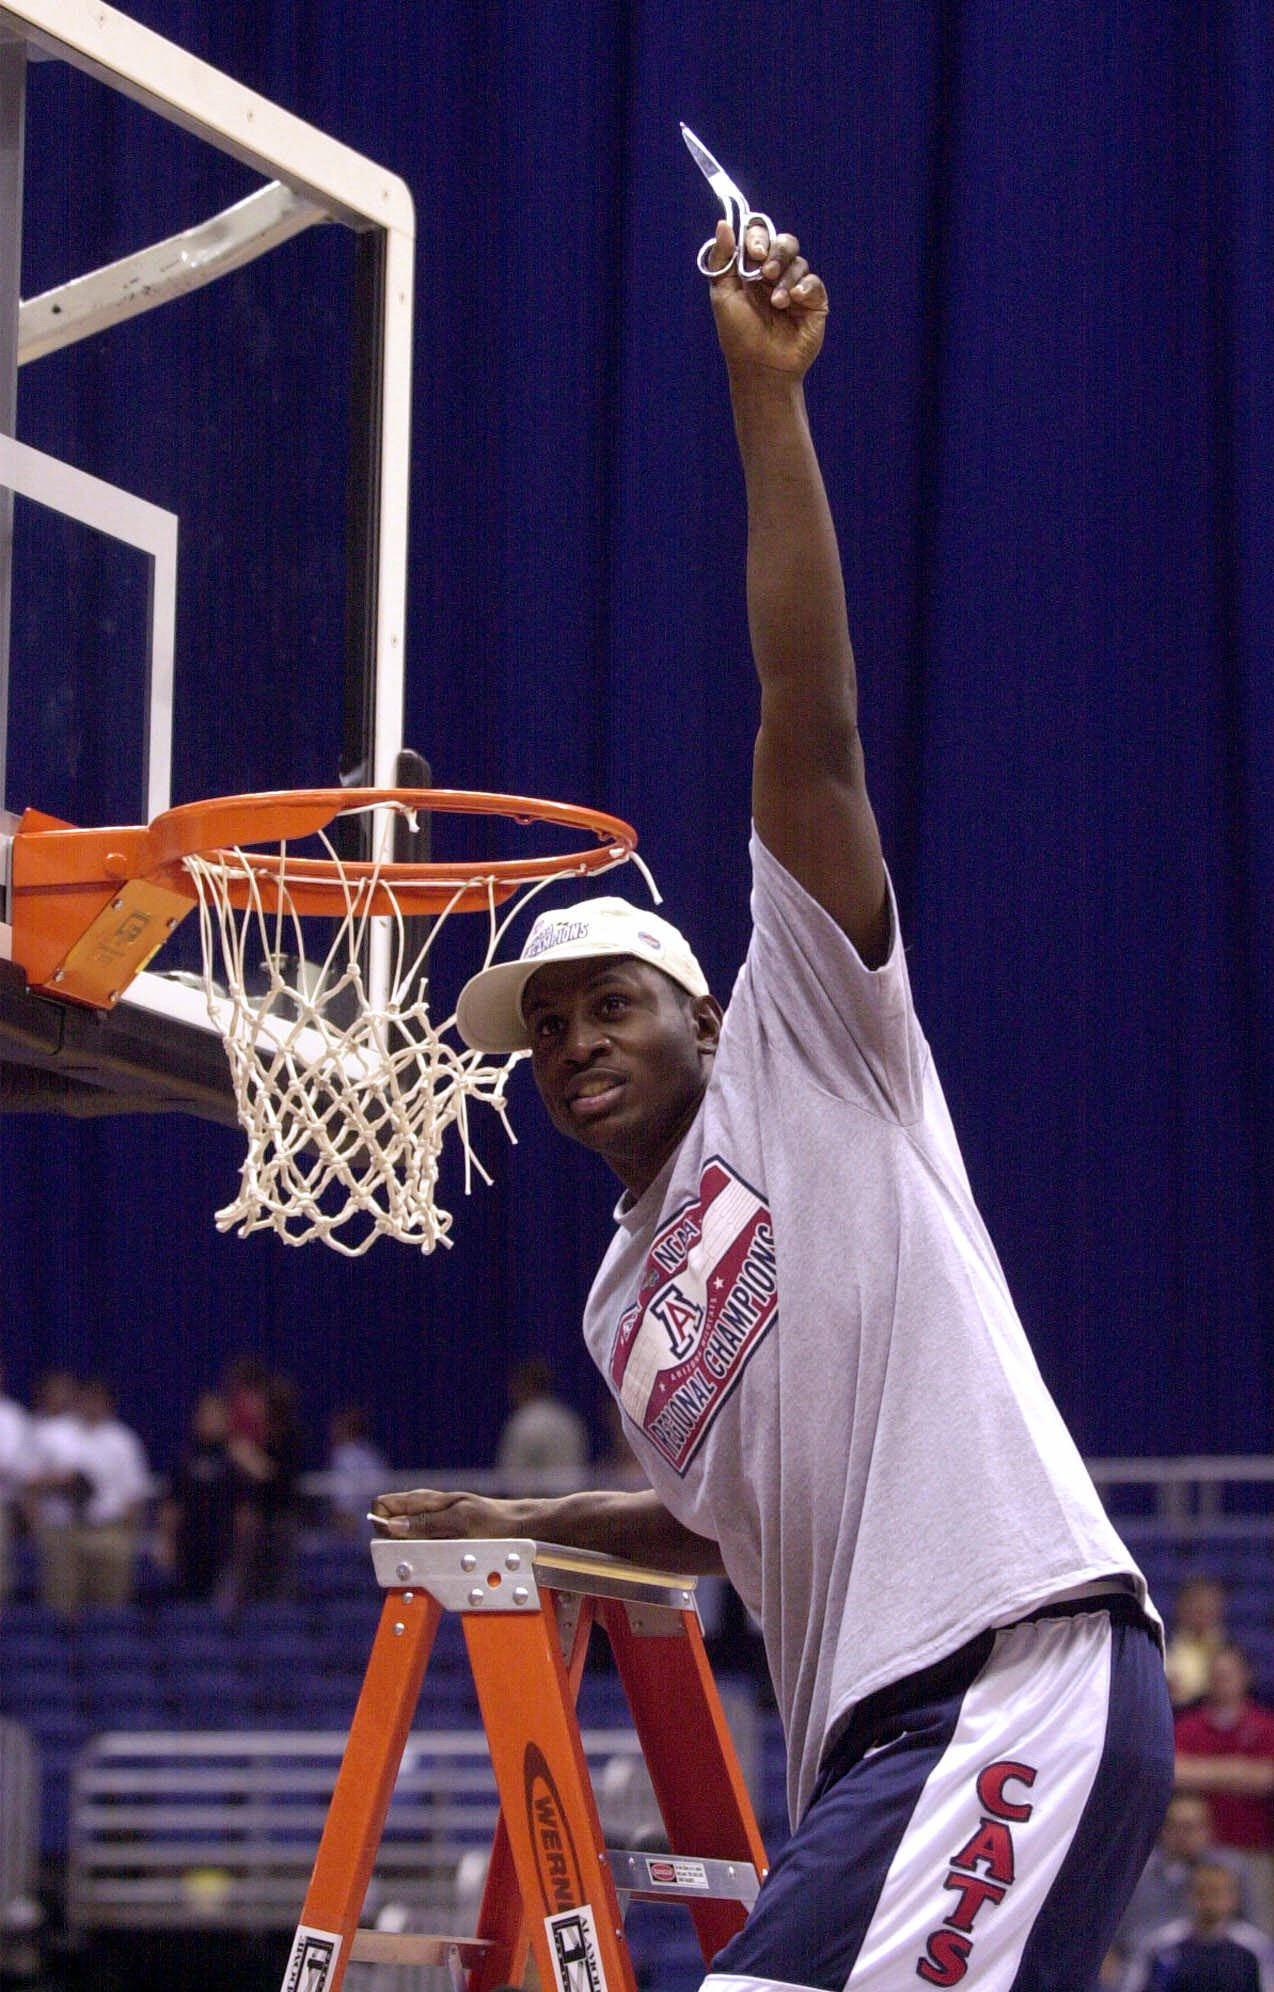 Arizona's Michael Wright looks to the stands after cutting his share of the net following Arizona's 87-81 win over Illinois in the NCAA Midwest Regional final Sunday, March 25, 2001, at the Alamodome in San Antonio. (AP Photo/Eric Gay)